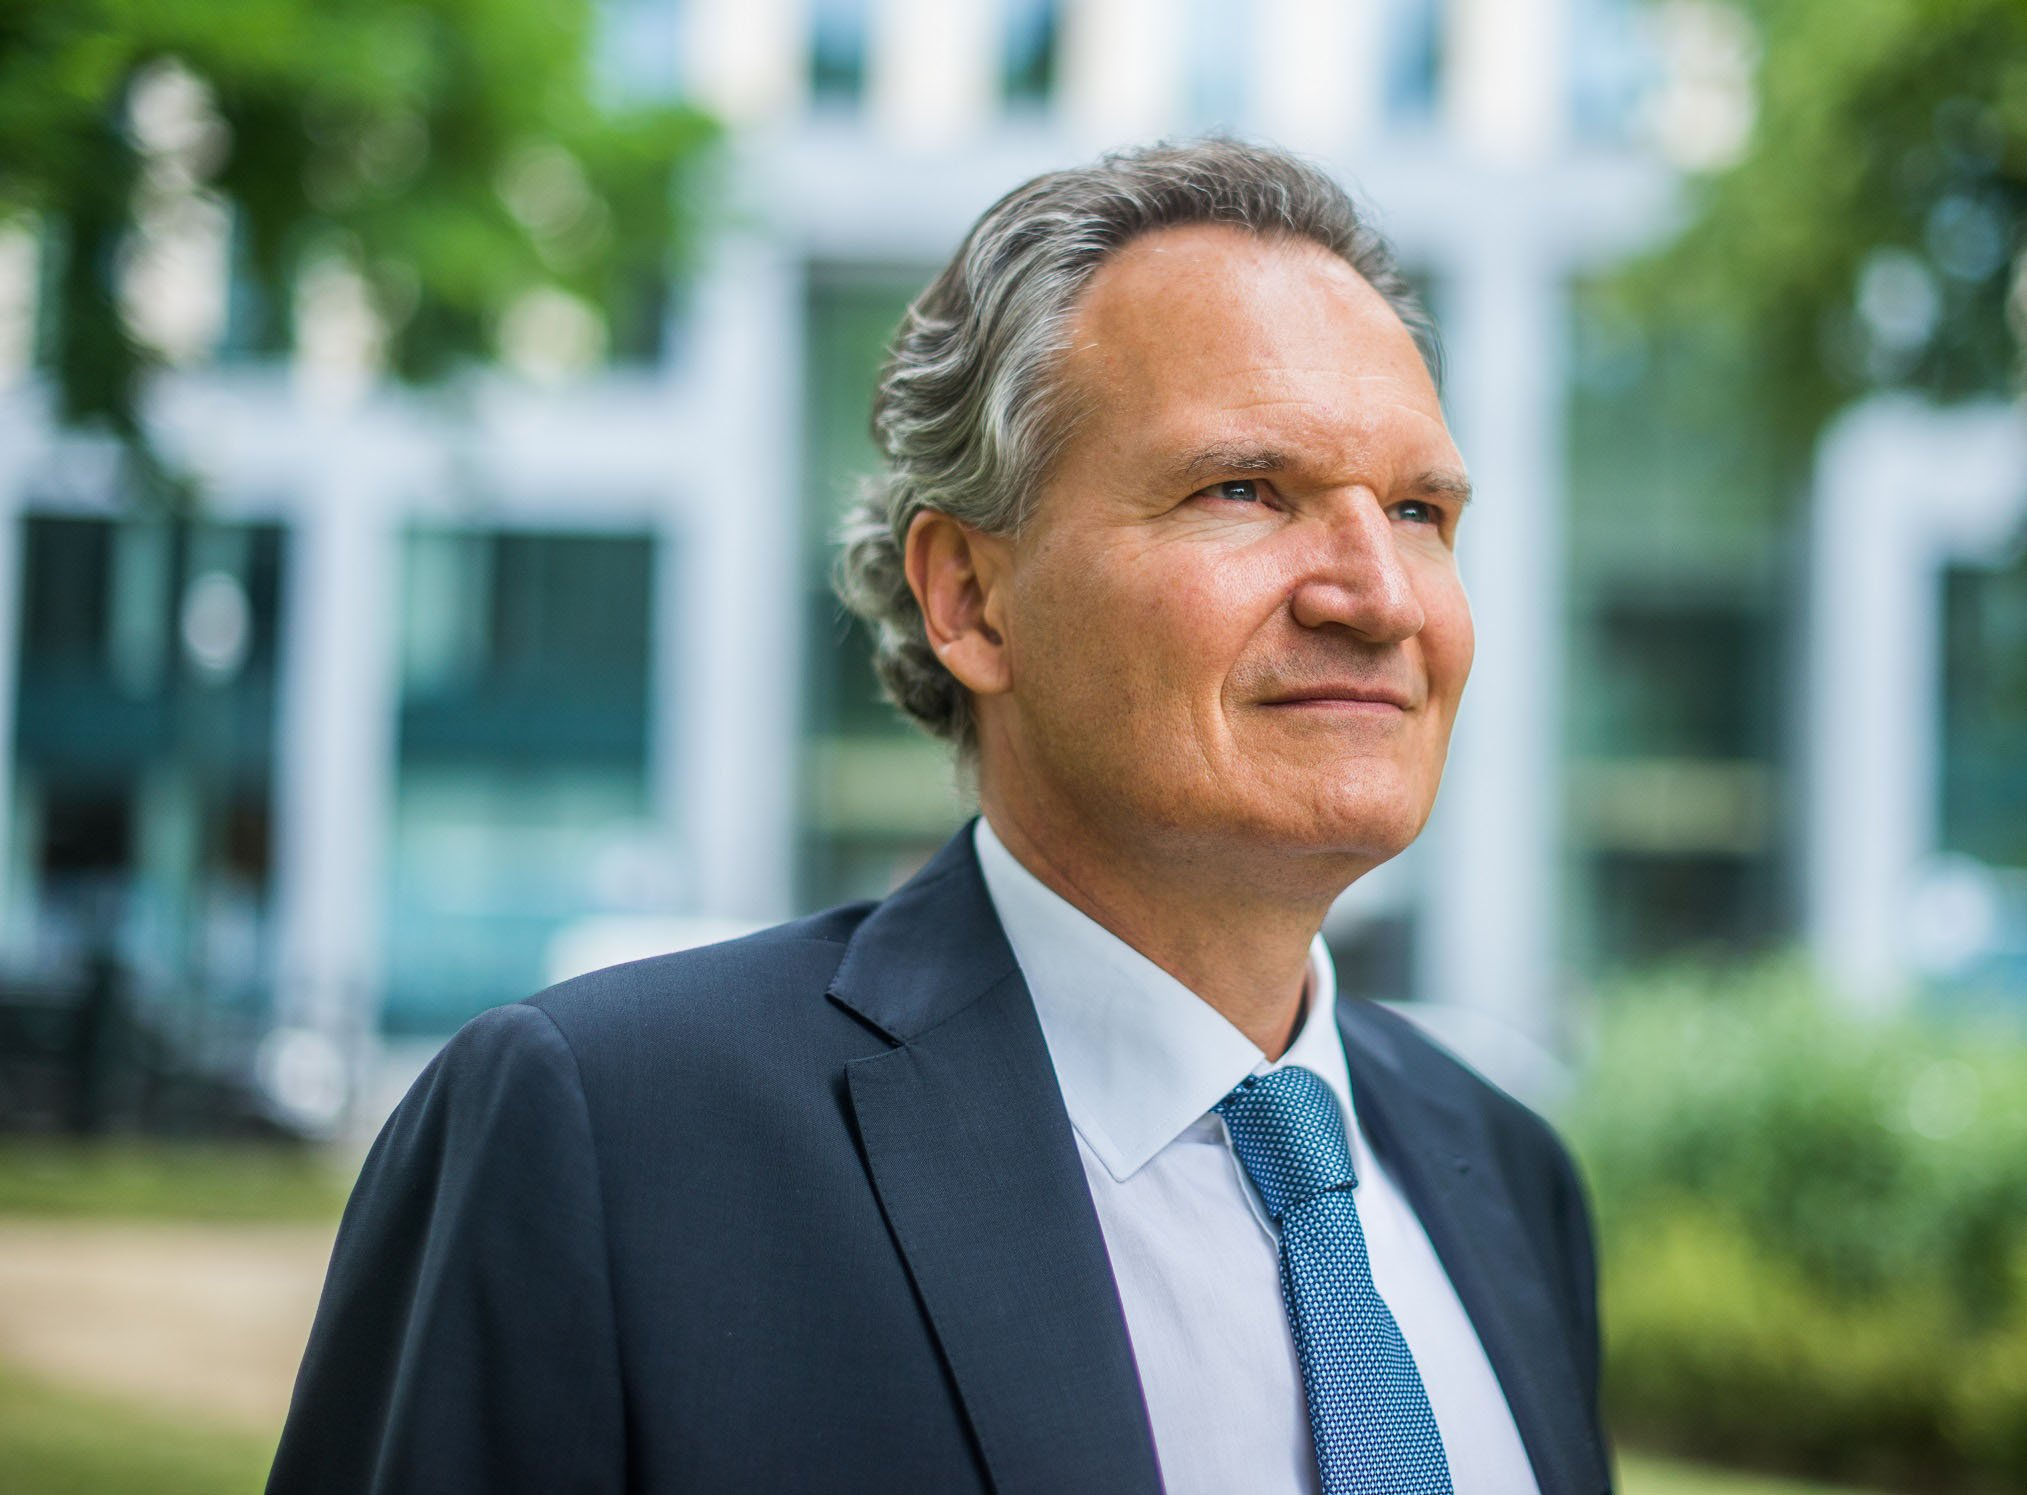 Imagineif all the billions we are now putting into these expensive subscription journals could be put into research, says Robert-Jan Smits.